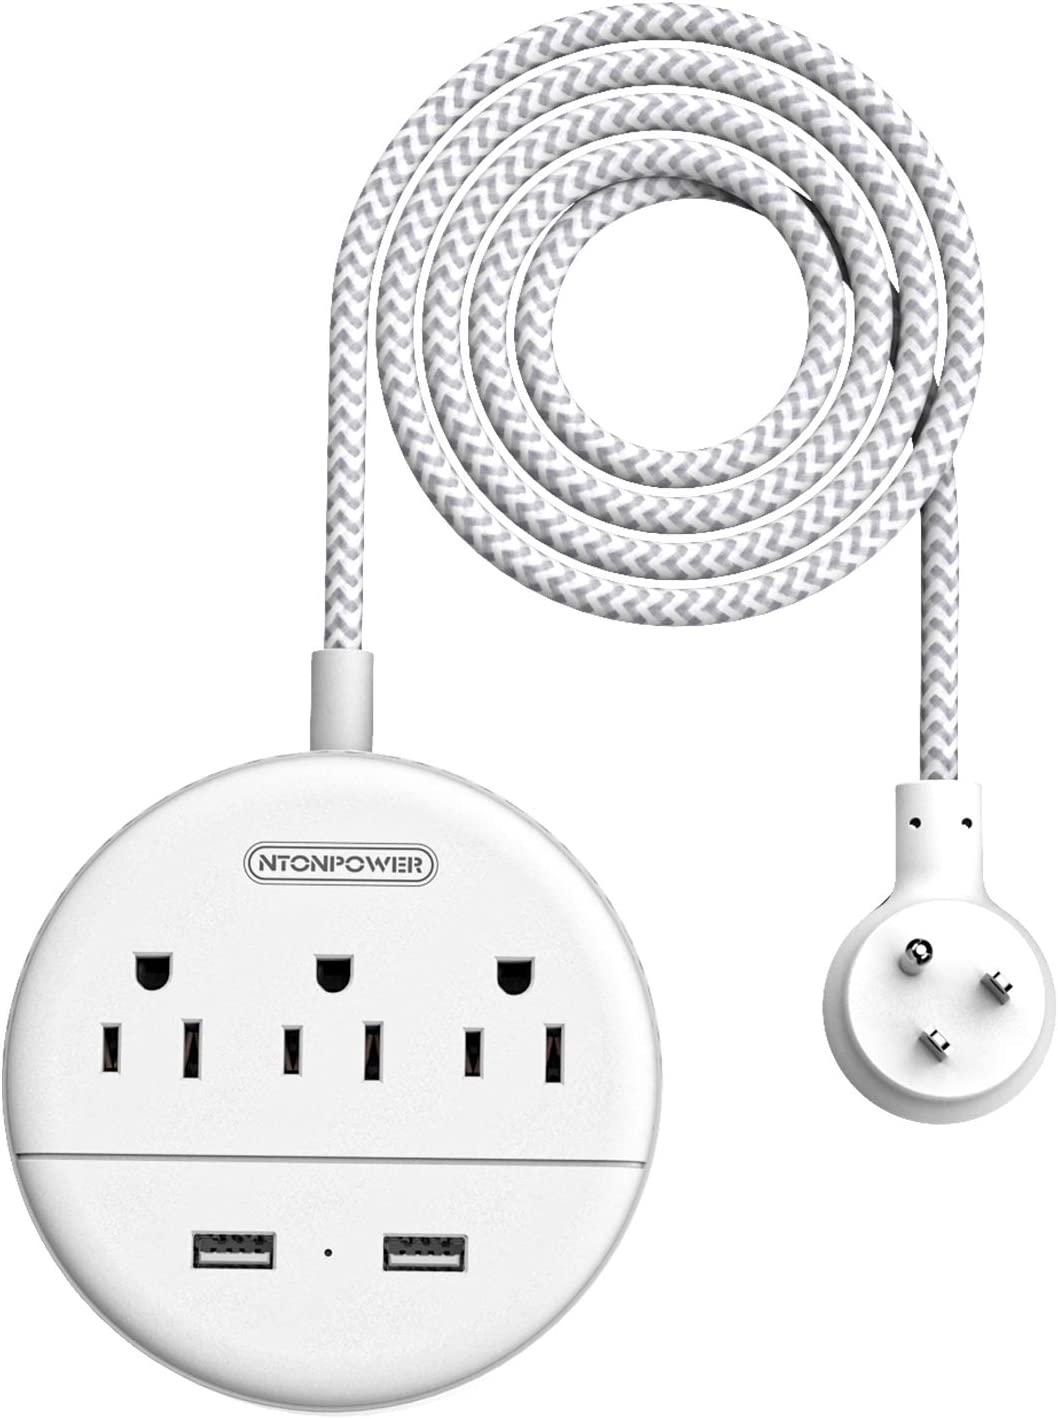 NTONPOWER Braided Power Strip Flat Plug with USB, Compact Nightstand Desktop Charging Station with 3 Outlets 2 USB Ports, Wall Mount Small Size for Dorm Nightstand Home Office, White